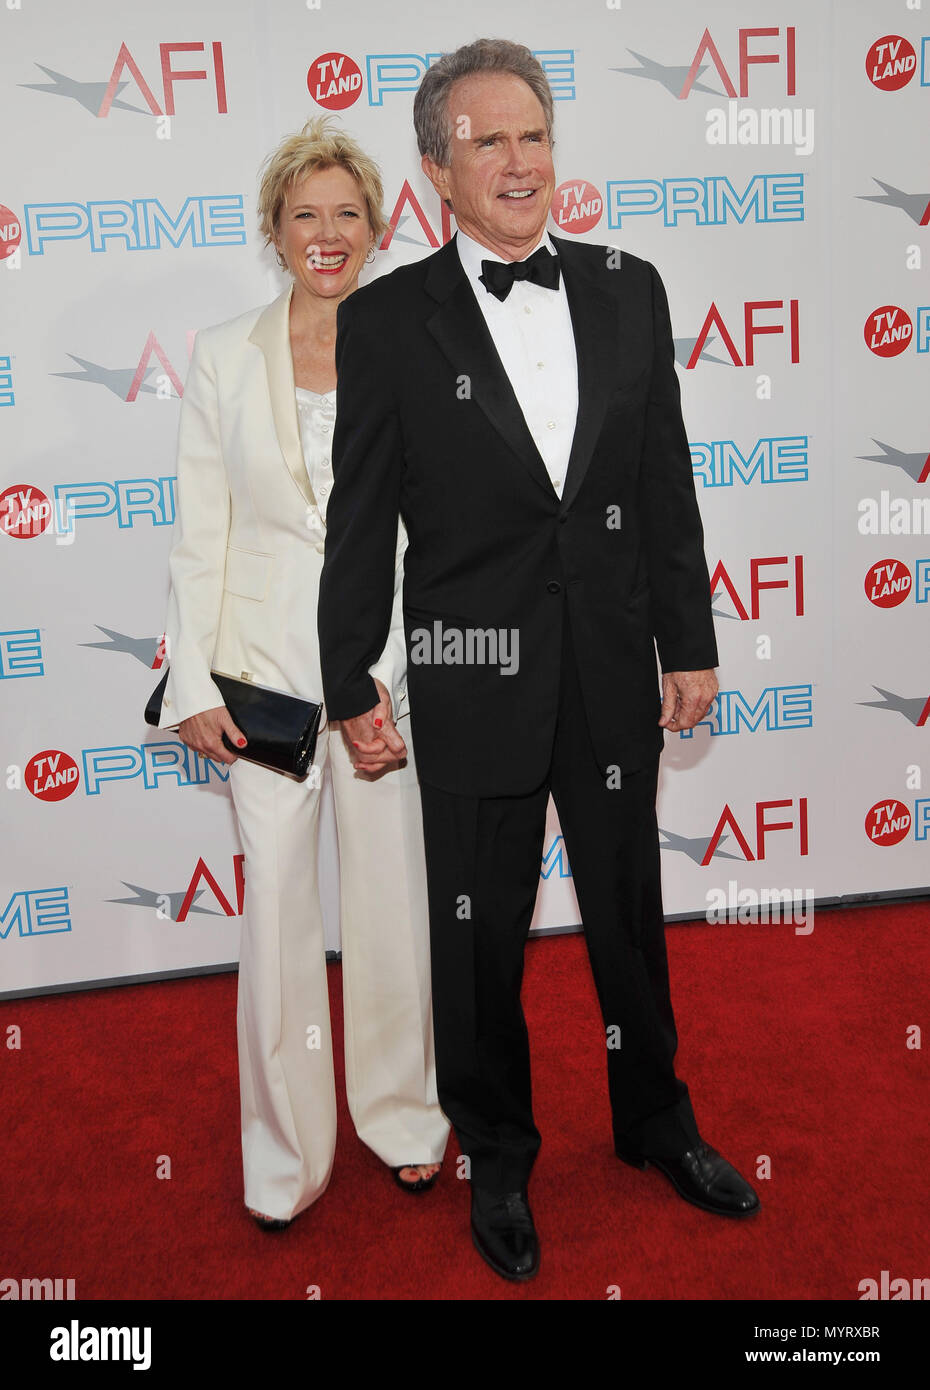 Annette Bening And Family Stock Photos & Annette Bening ...